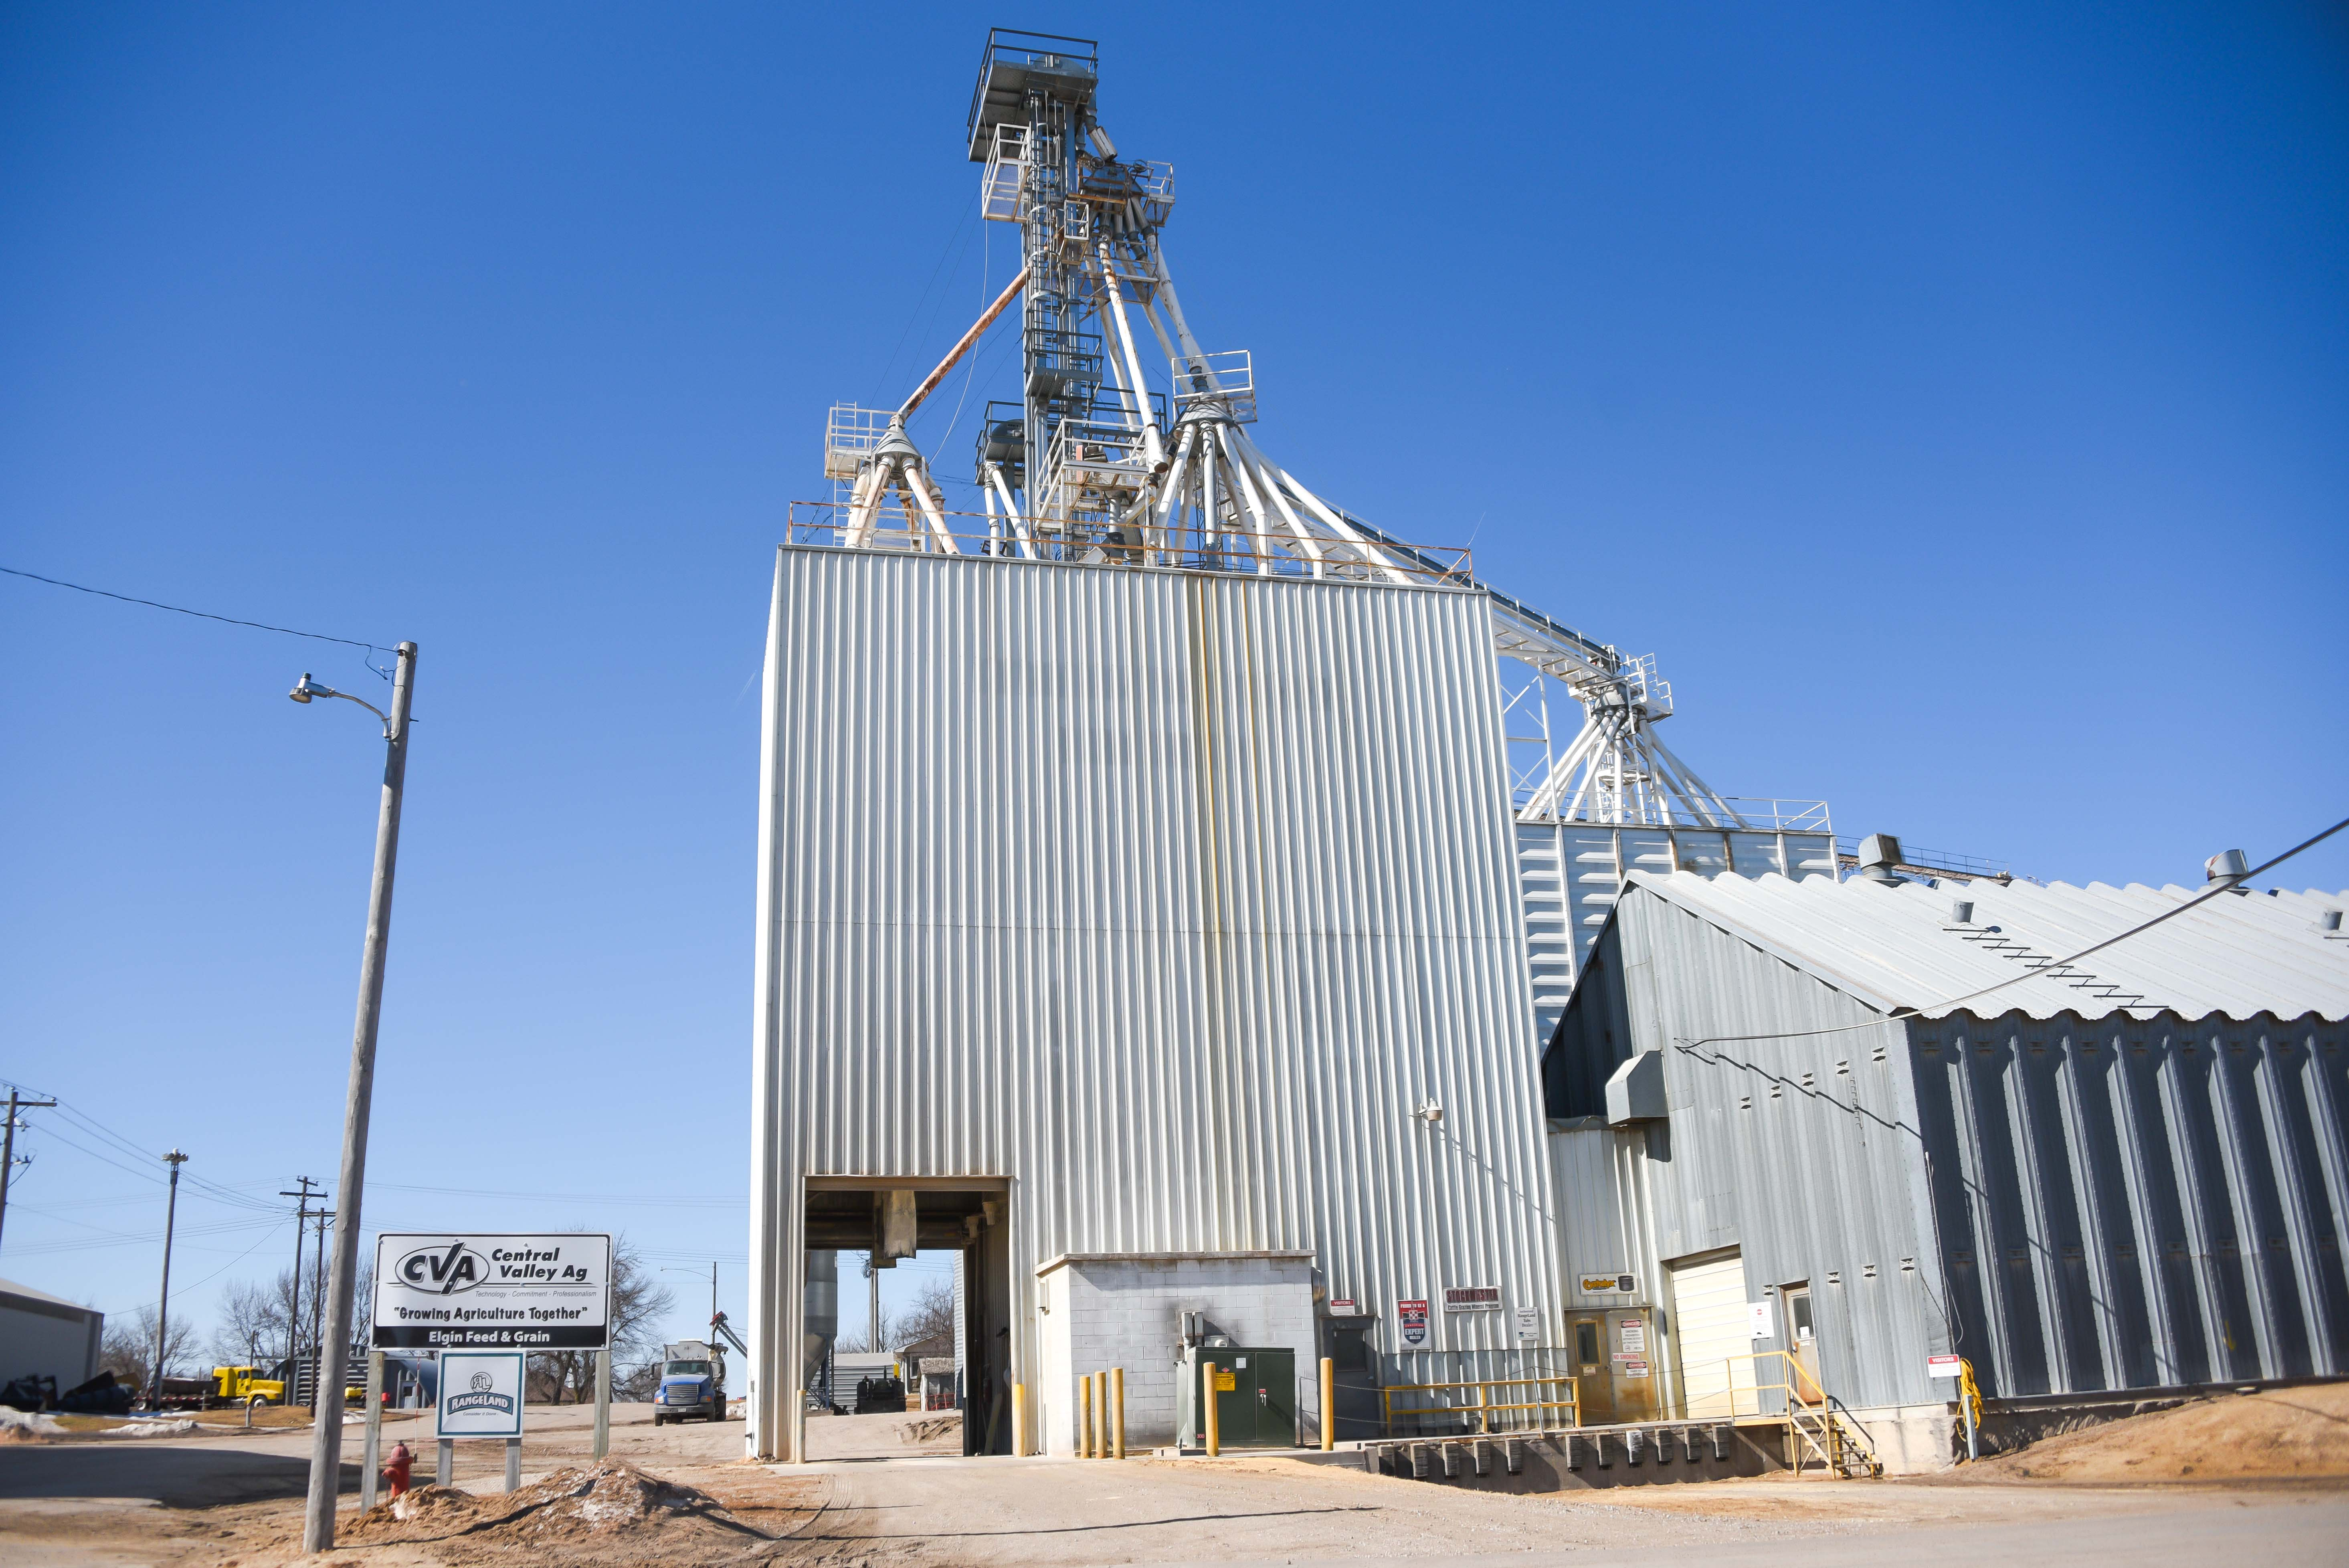 Cva elgin obtains perfect score during haccp recertification cva elgin ne central valley ag cva feed mill in elgin nebraska recently went through their annual haccp recertification inspection and received a perfect 1betcityfo Choice Image